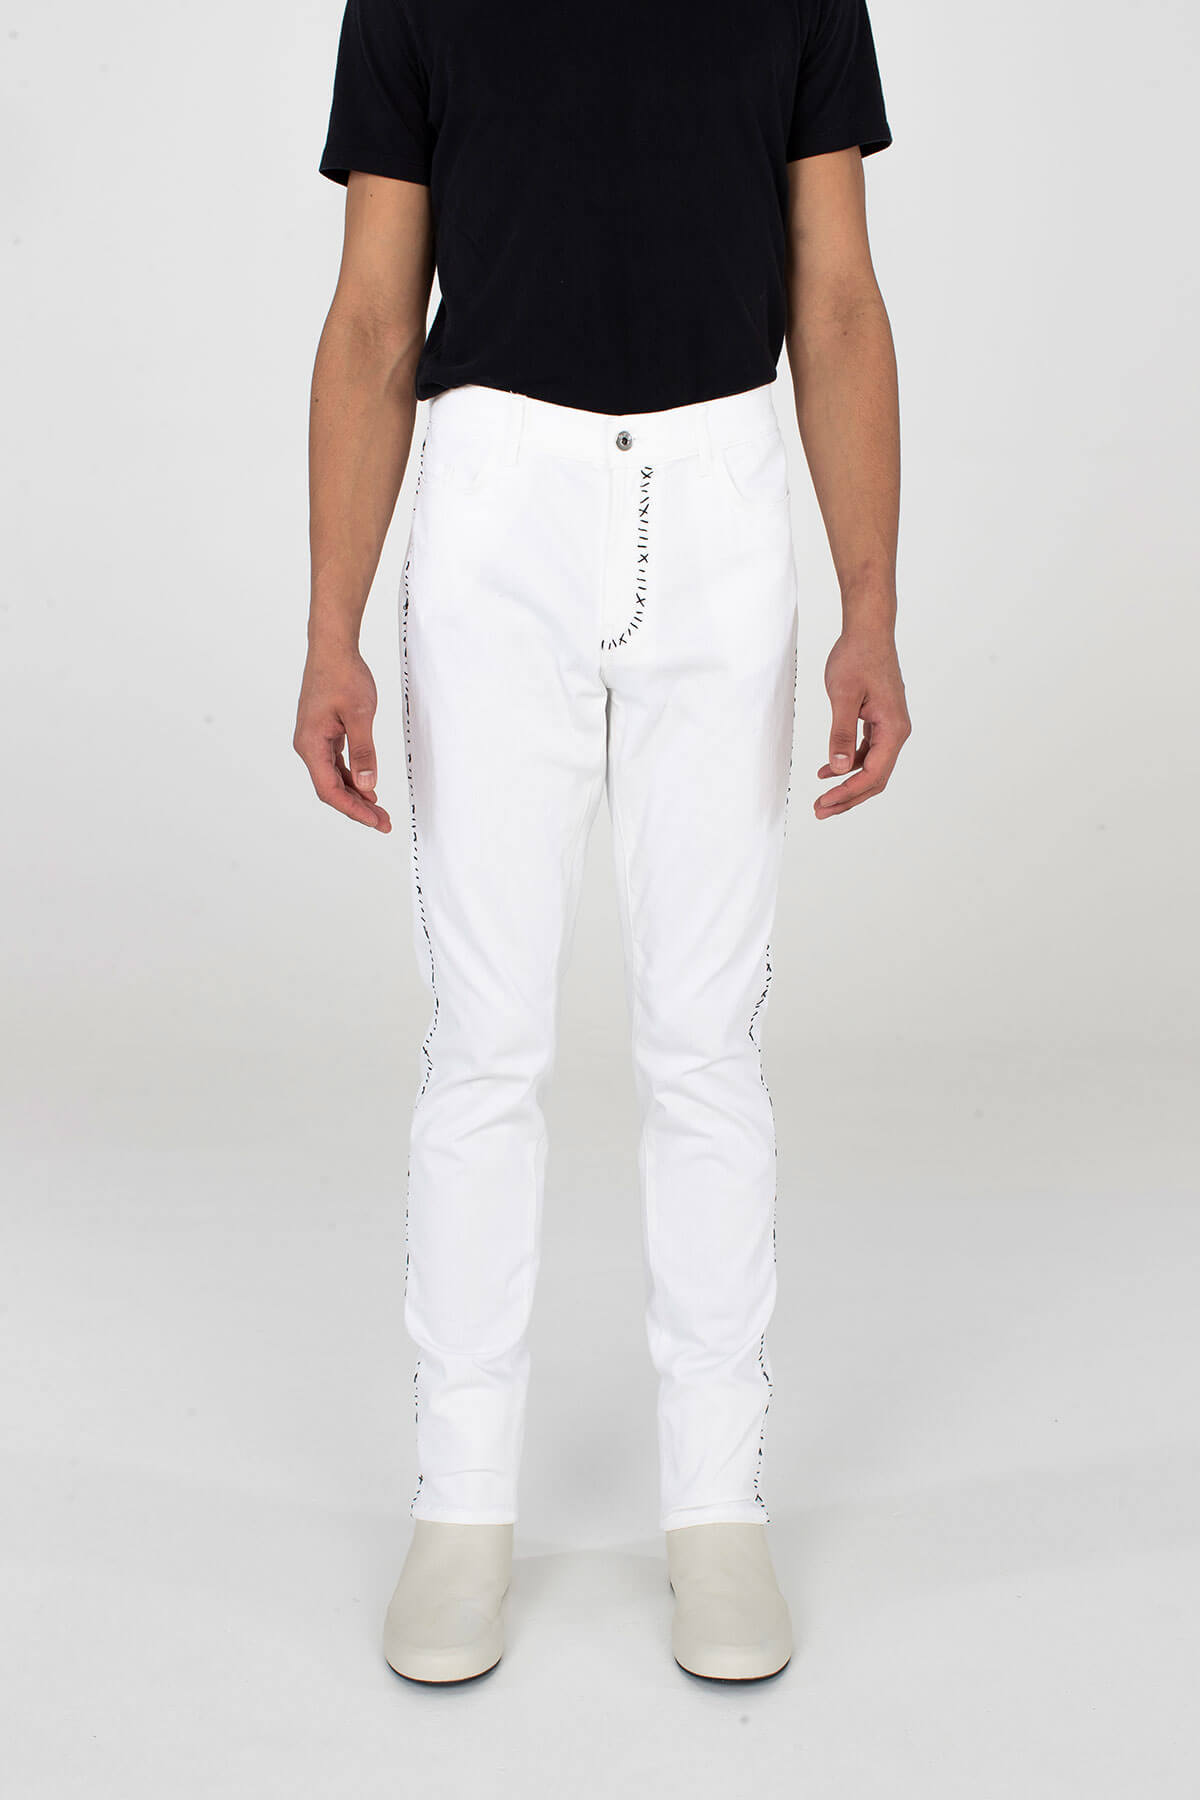 Crixus Jeans - Punk - BOTTOM - MJB